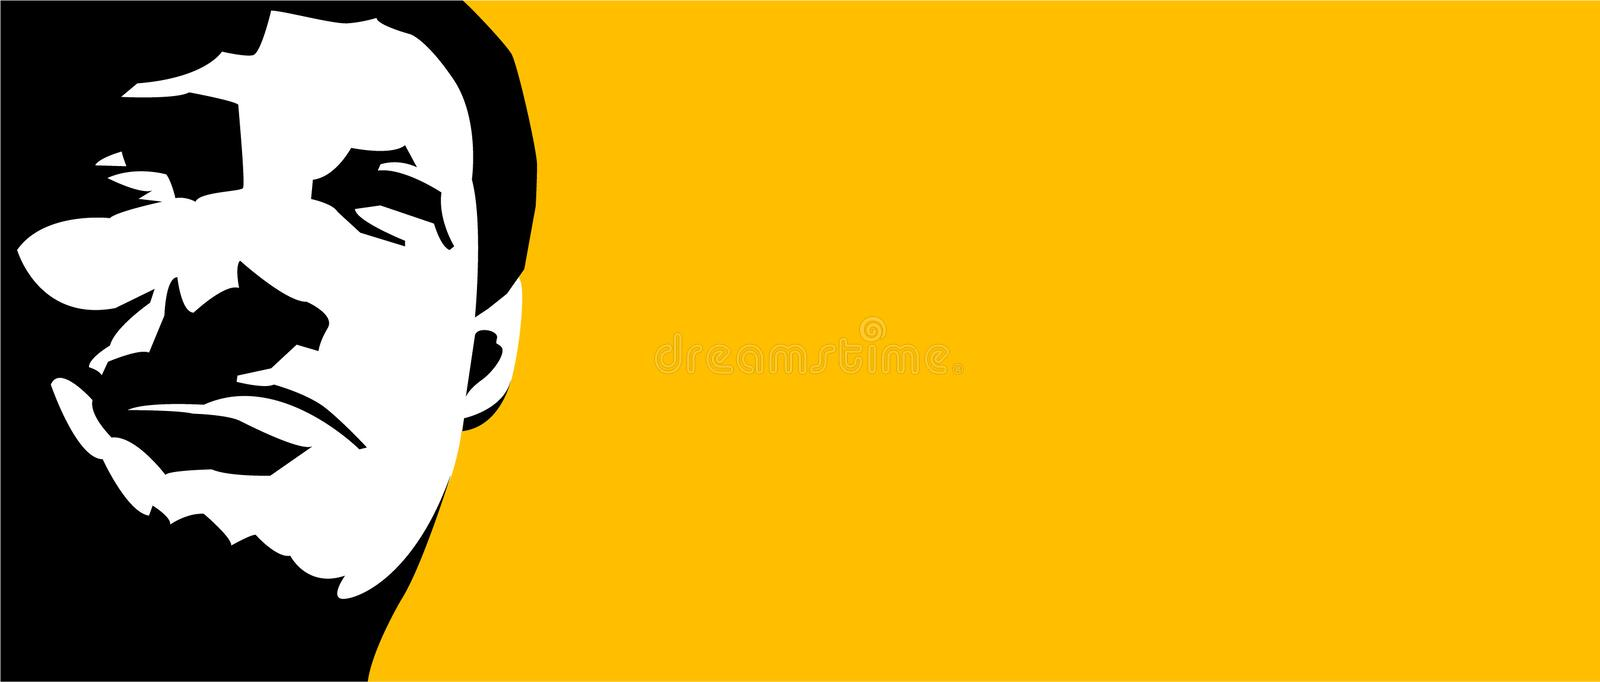 Male face background royalty free illustration